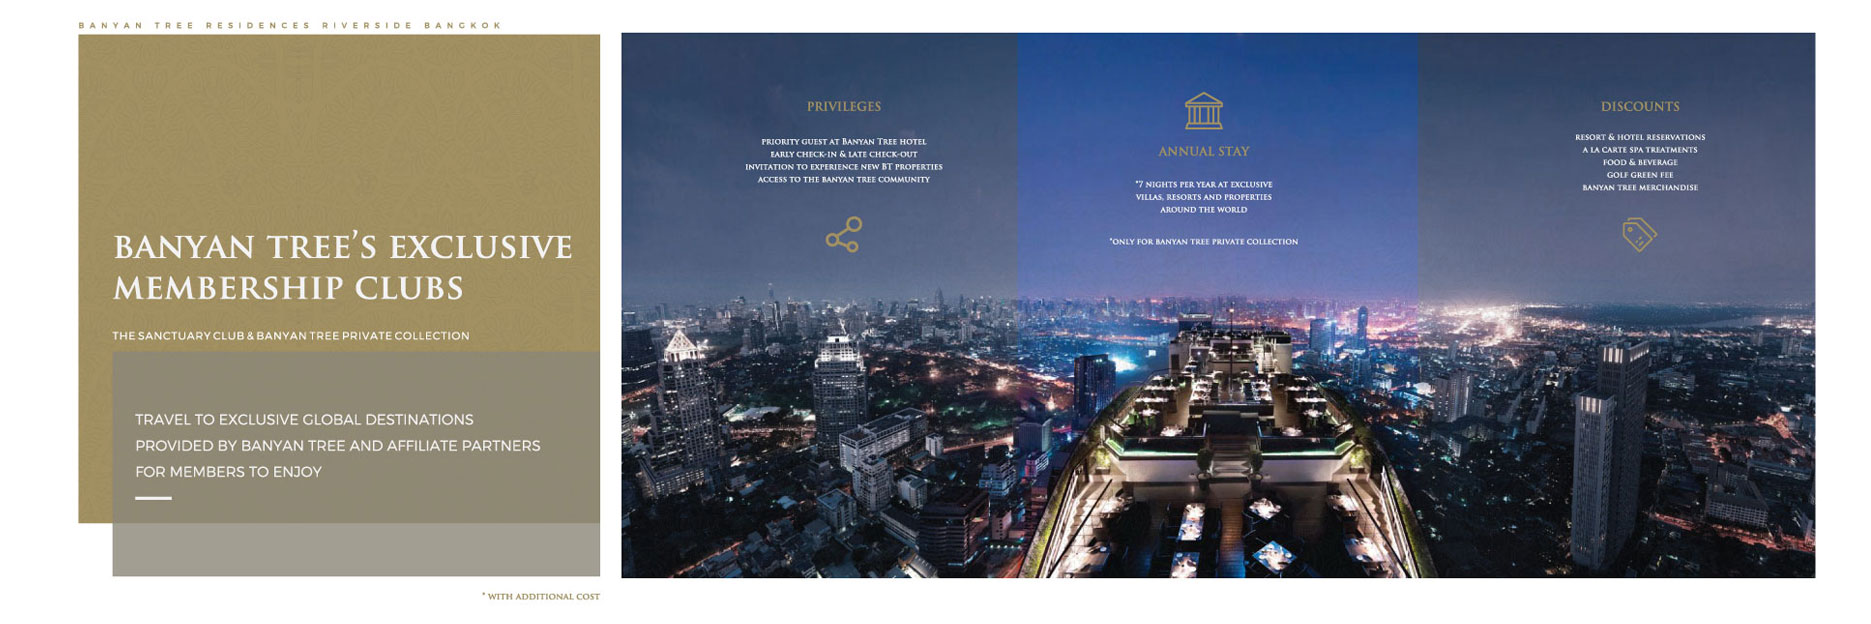 Banyan Tree Residences Riverside Bangkok Brochure 13